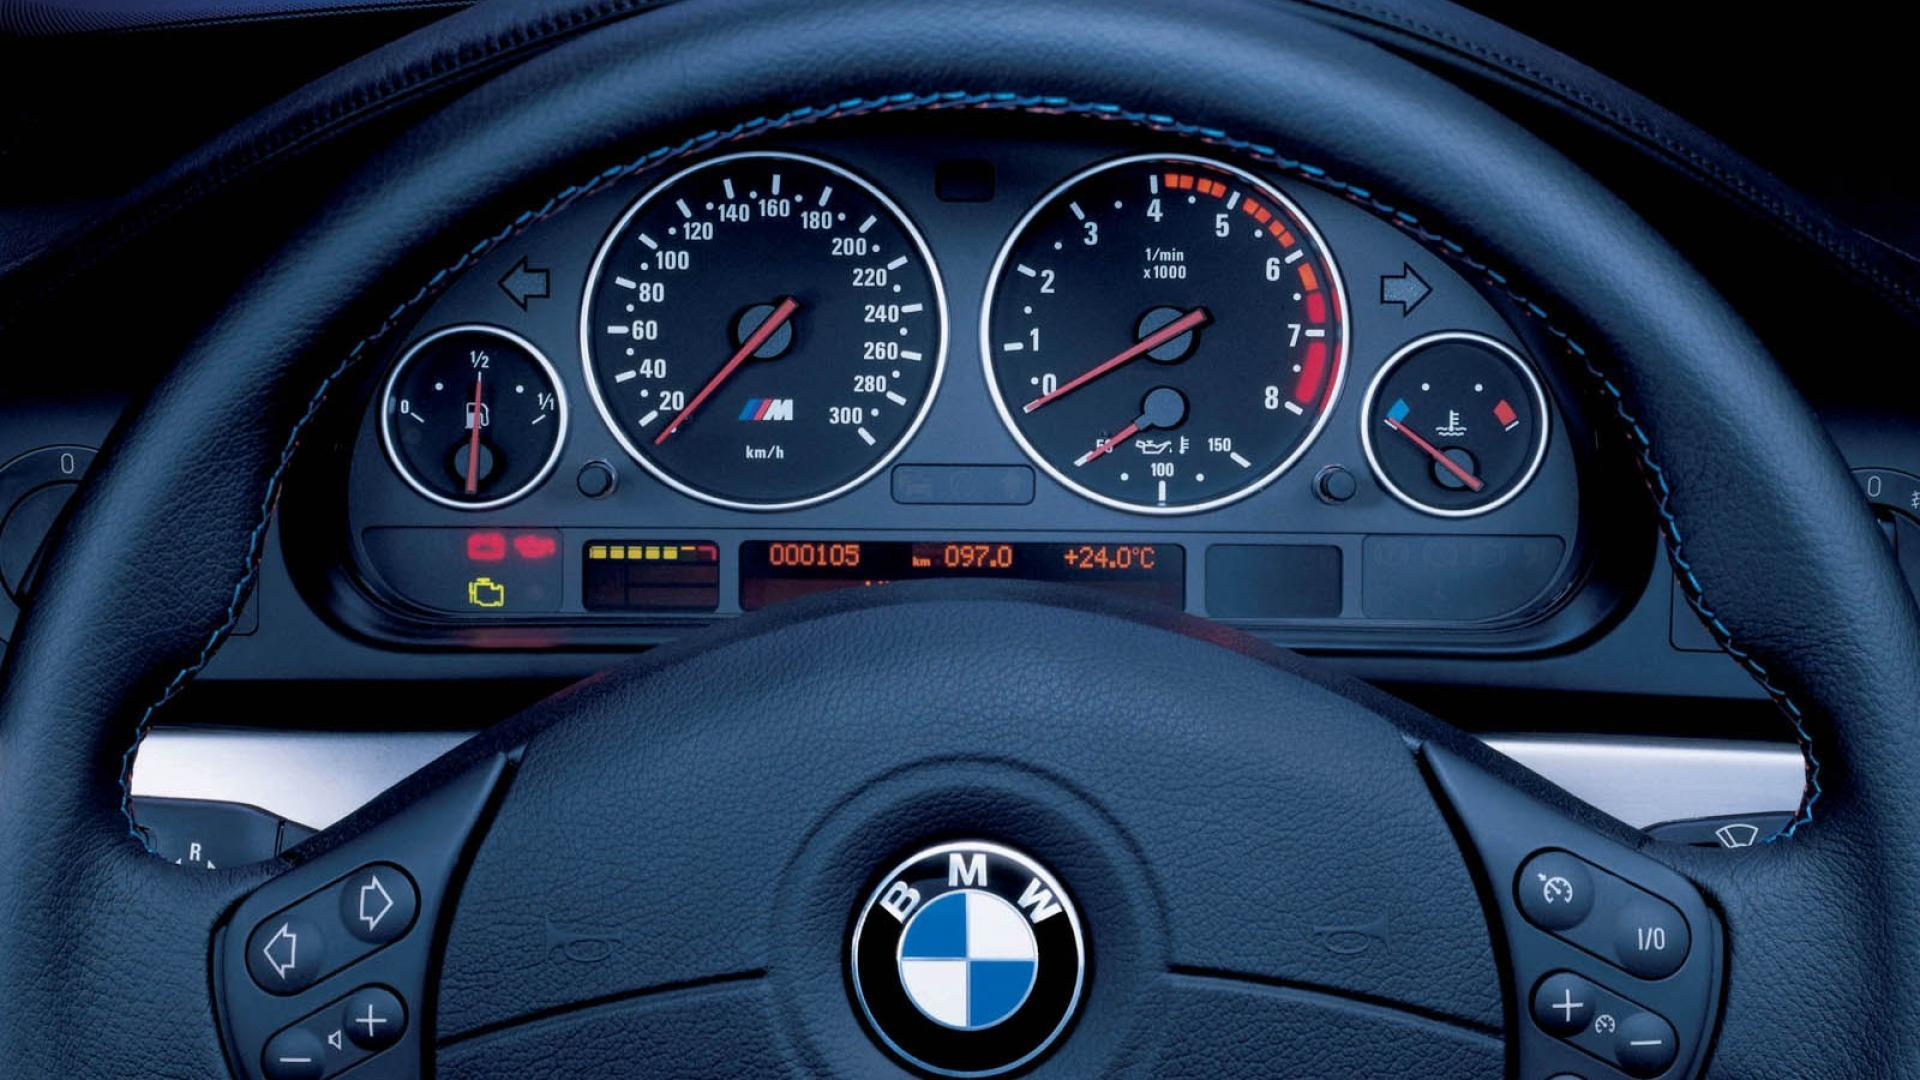 Bmw E39 M5 All New Car Release Date 2019 2020 Meyer Sv 8 5 Plow Wiring Diagram Wallpapers Wallpaper Cave